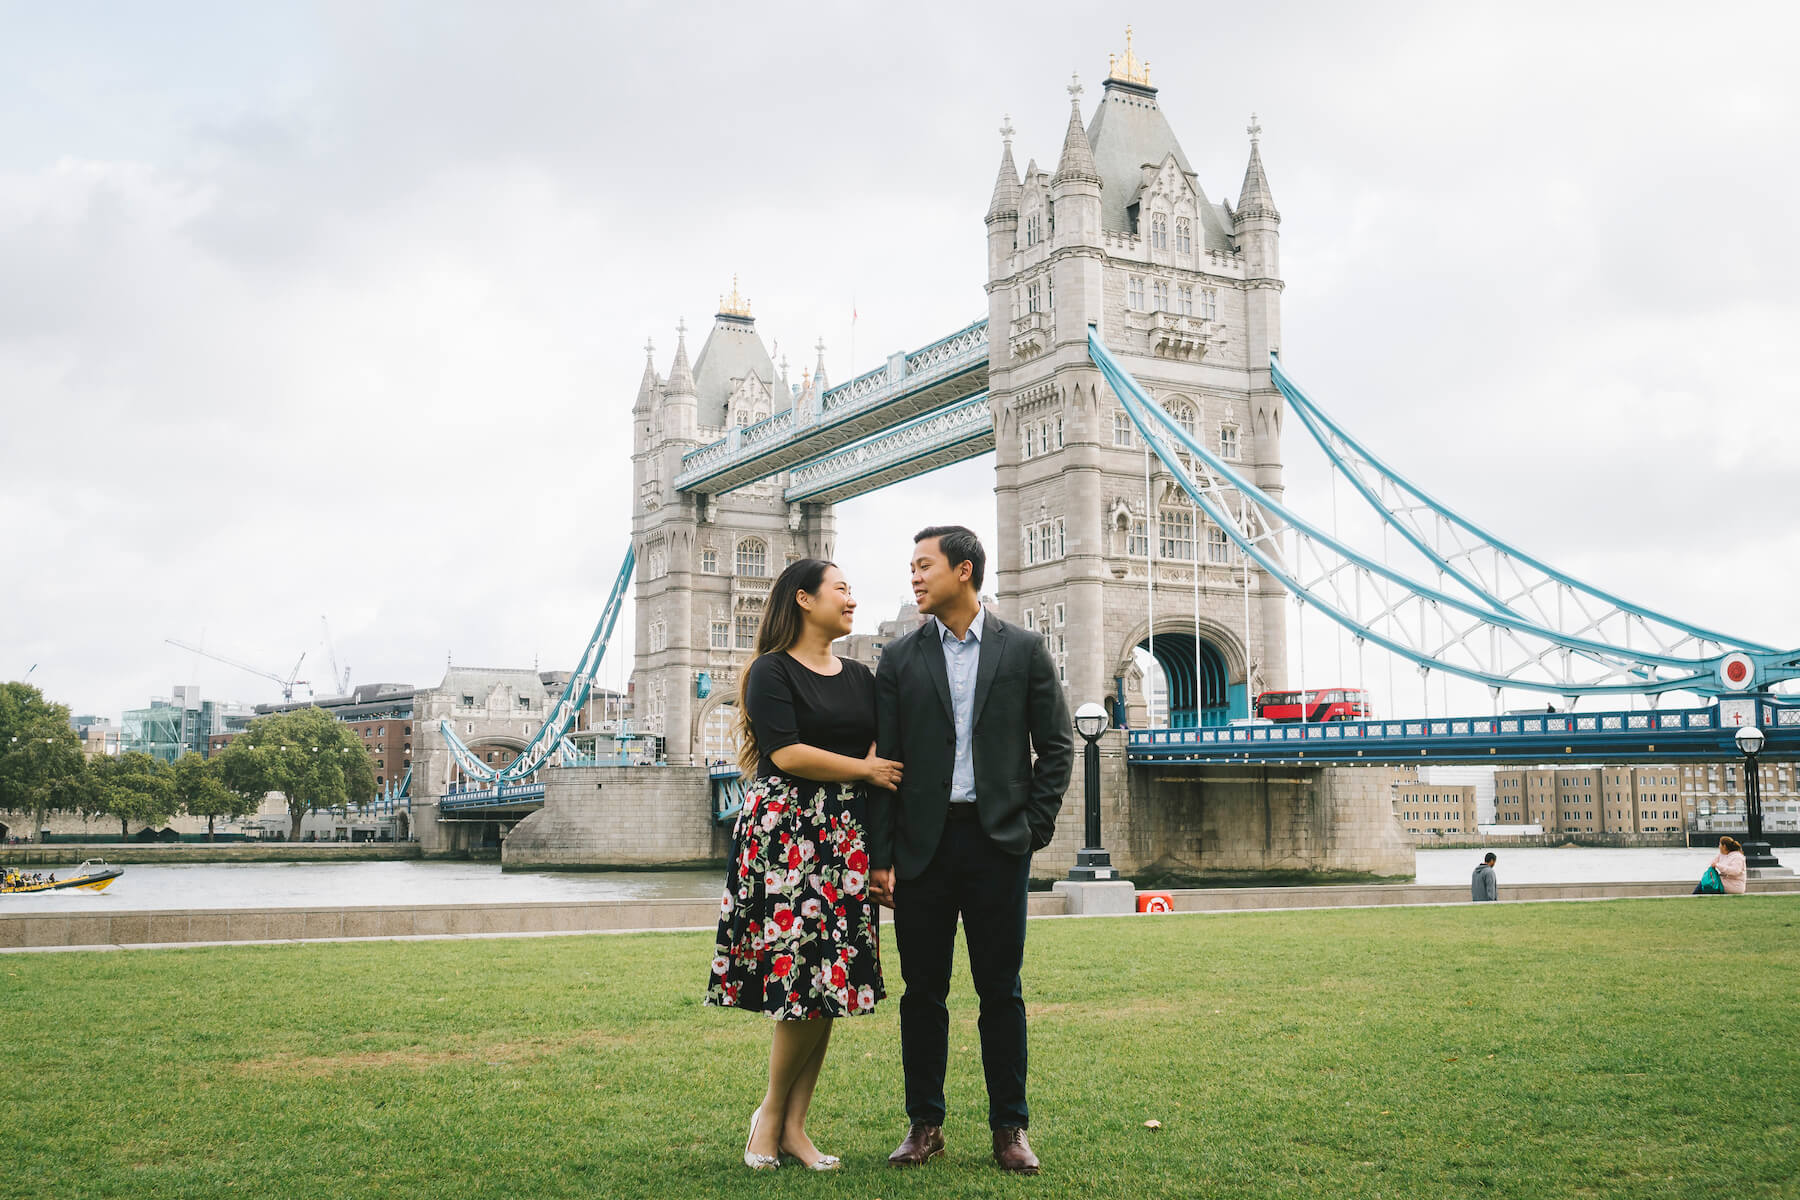 Couple in front of the London Bridge holding hands, London, England